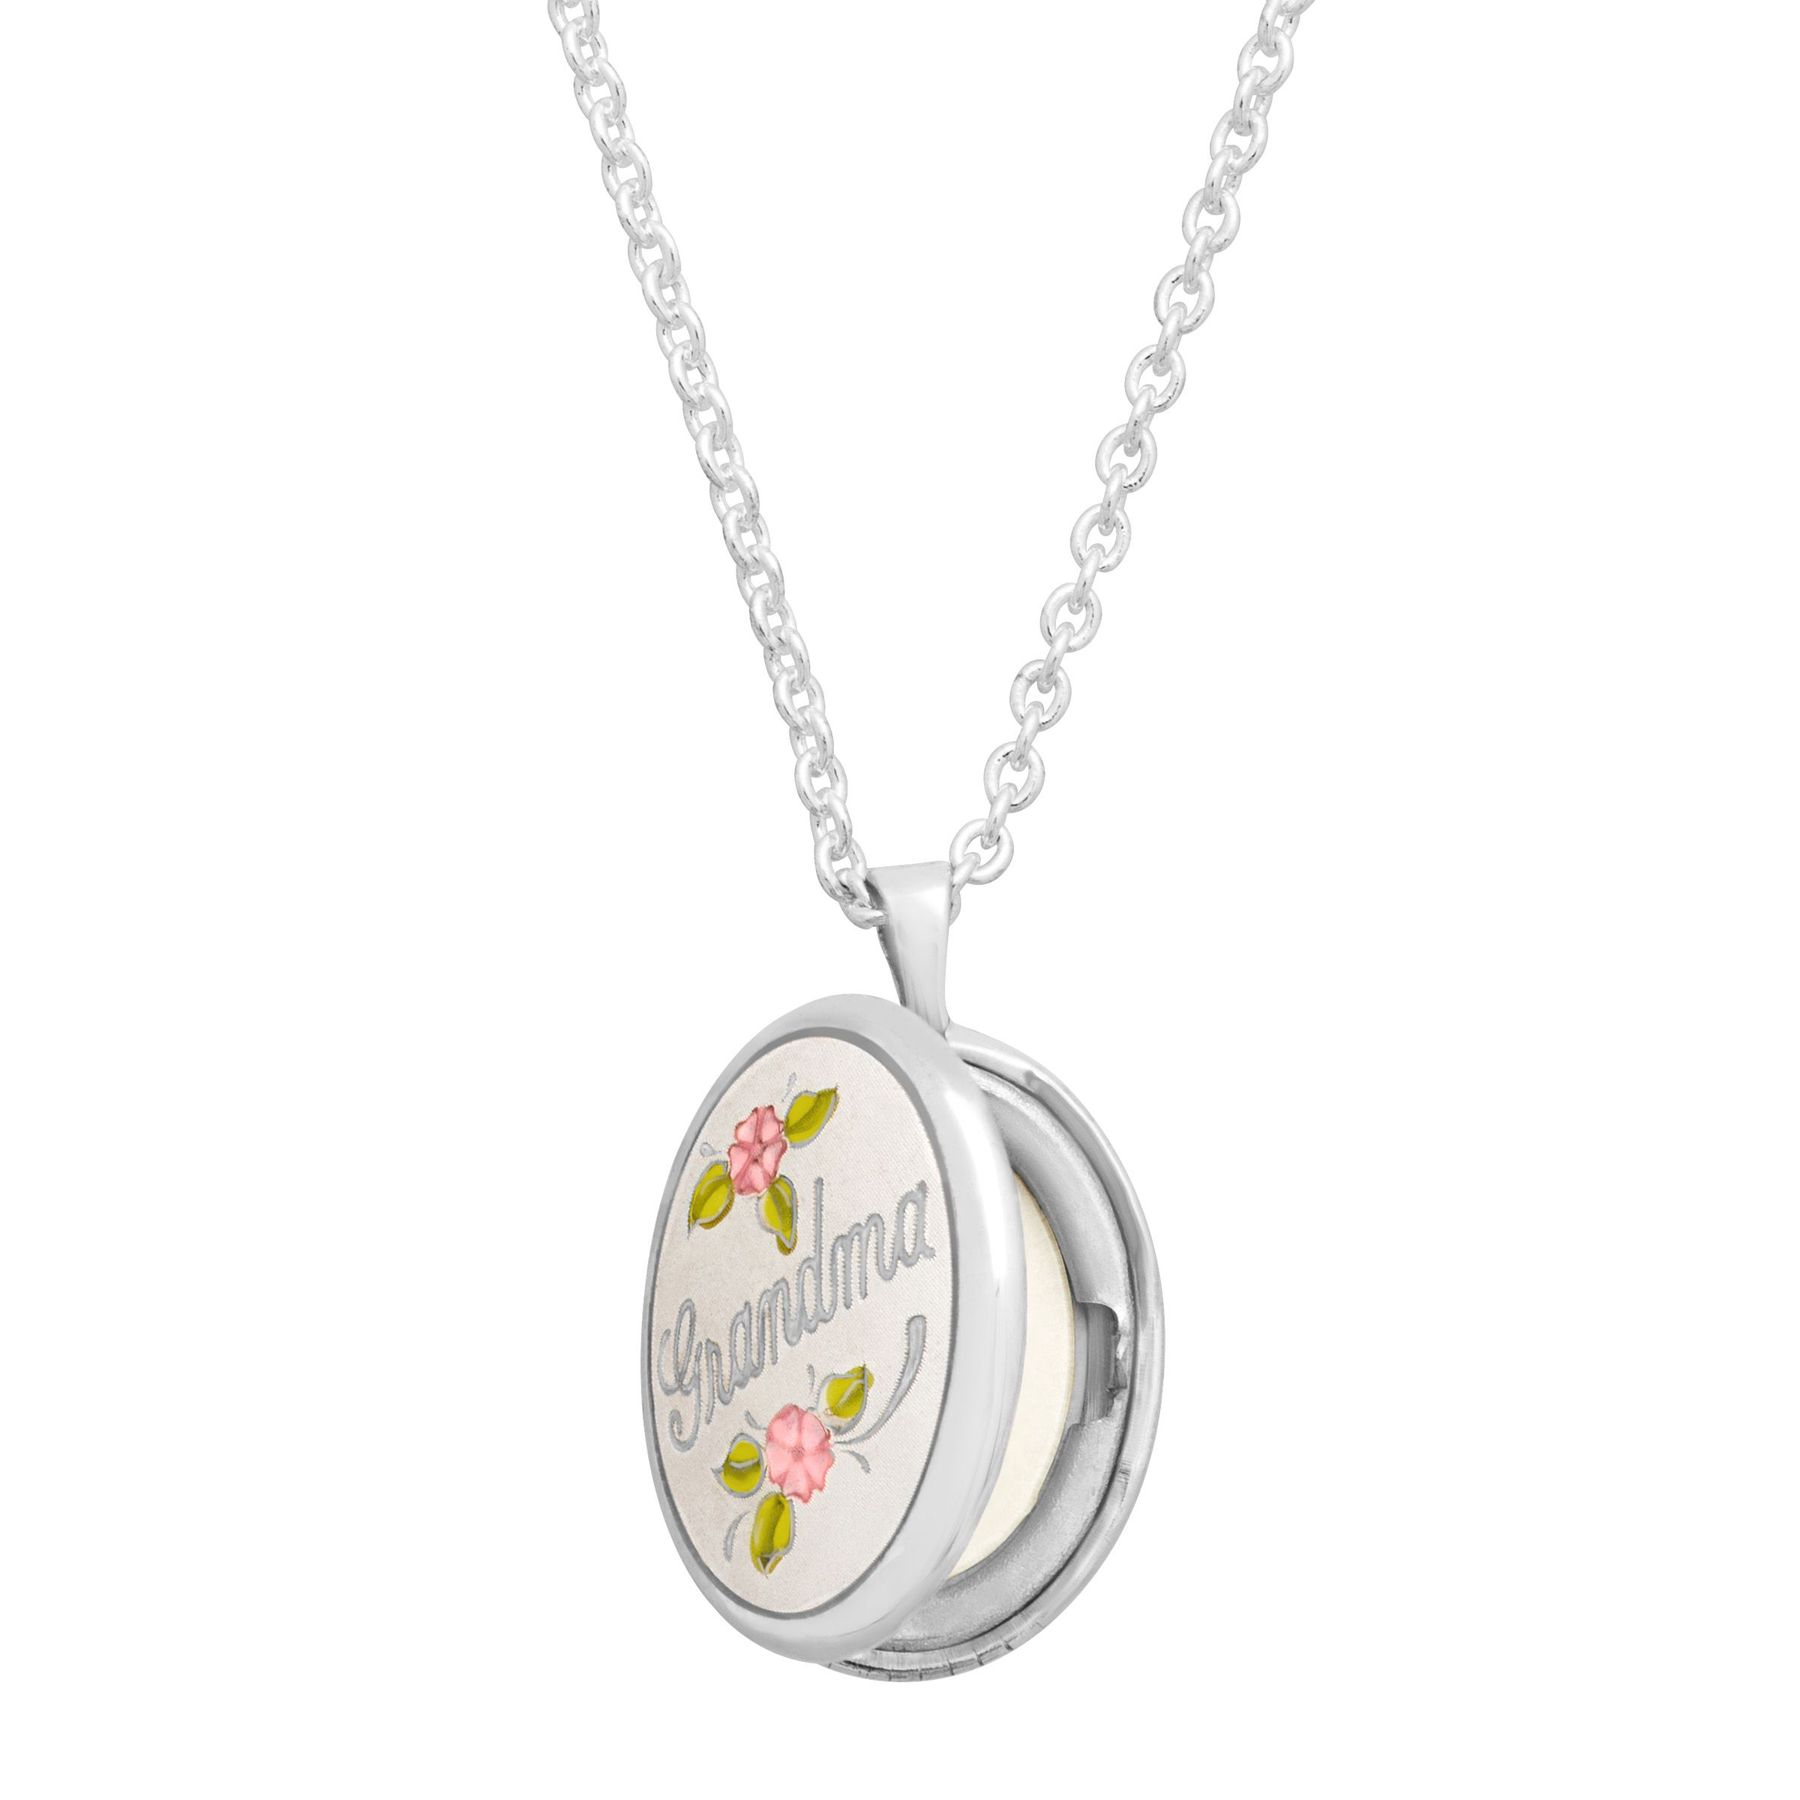 mimi nana necklace silver snowflake grandmother lockets grandma charm product sterling img